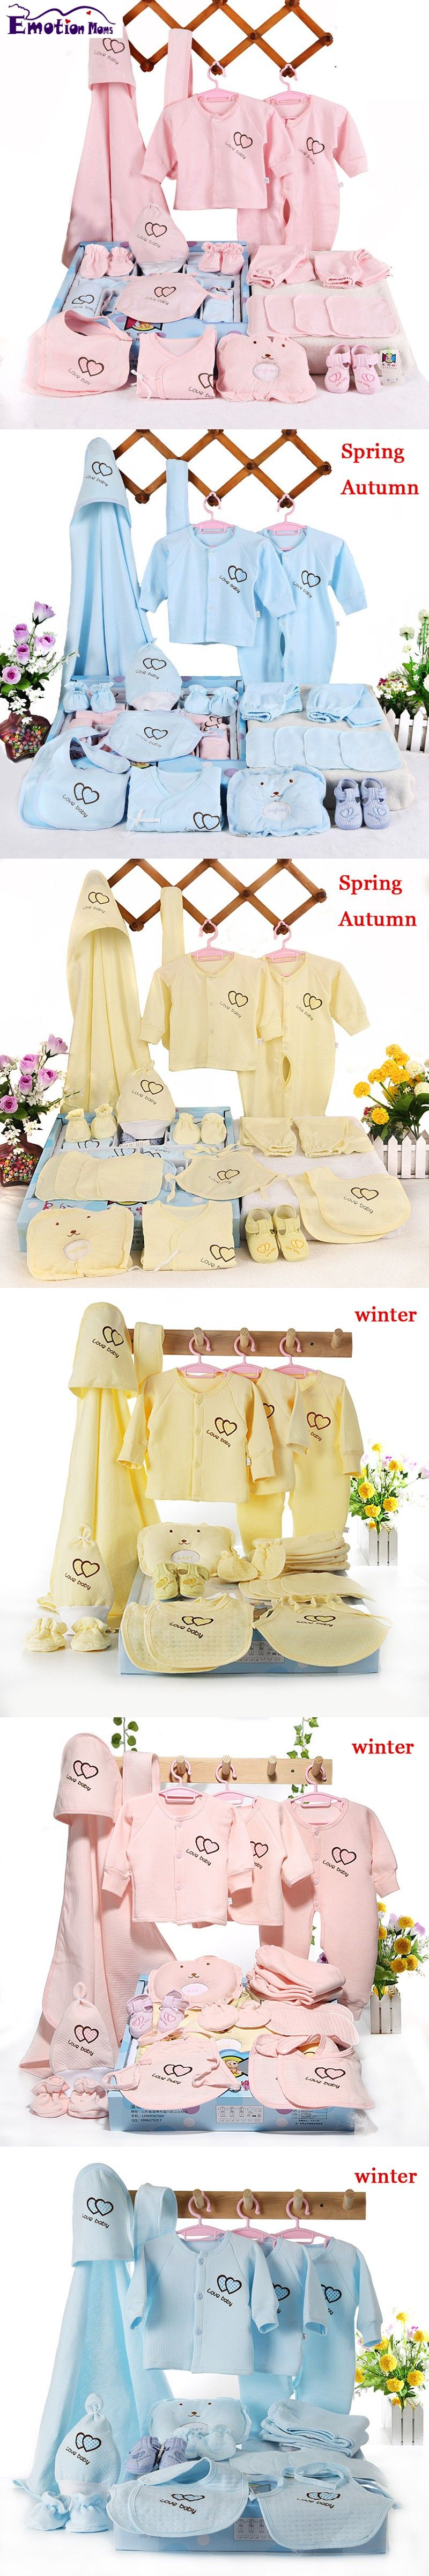 6254b20c5b5 22pieces Set Newborn baby girls Clothing 0-6months infants baby clothes  girl boys clothing set baby gift set without box  37.99